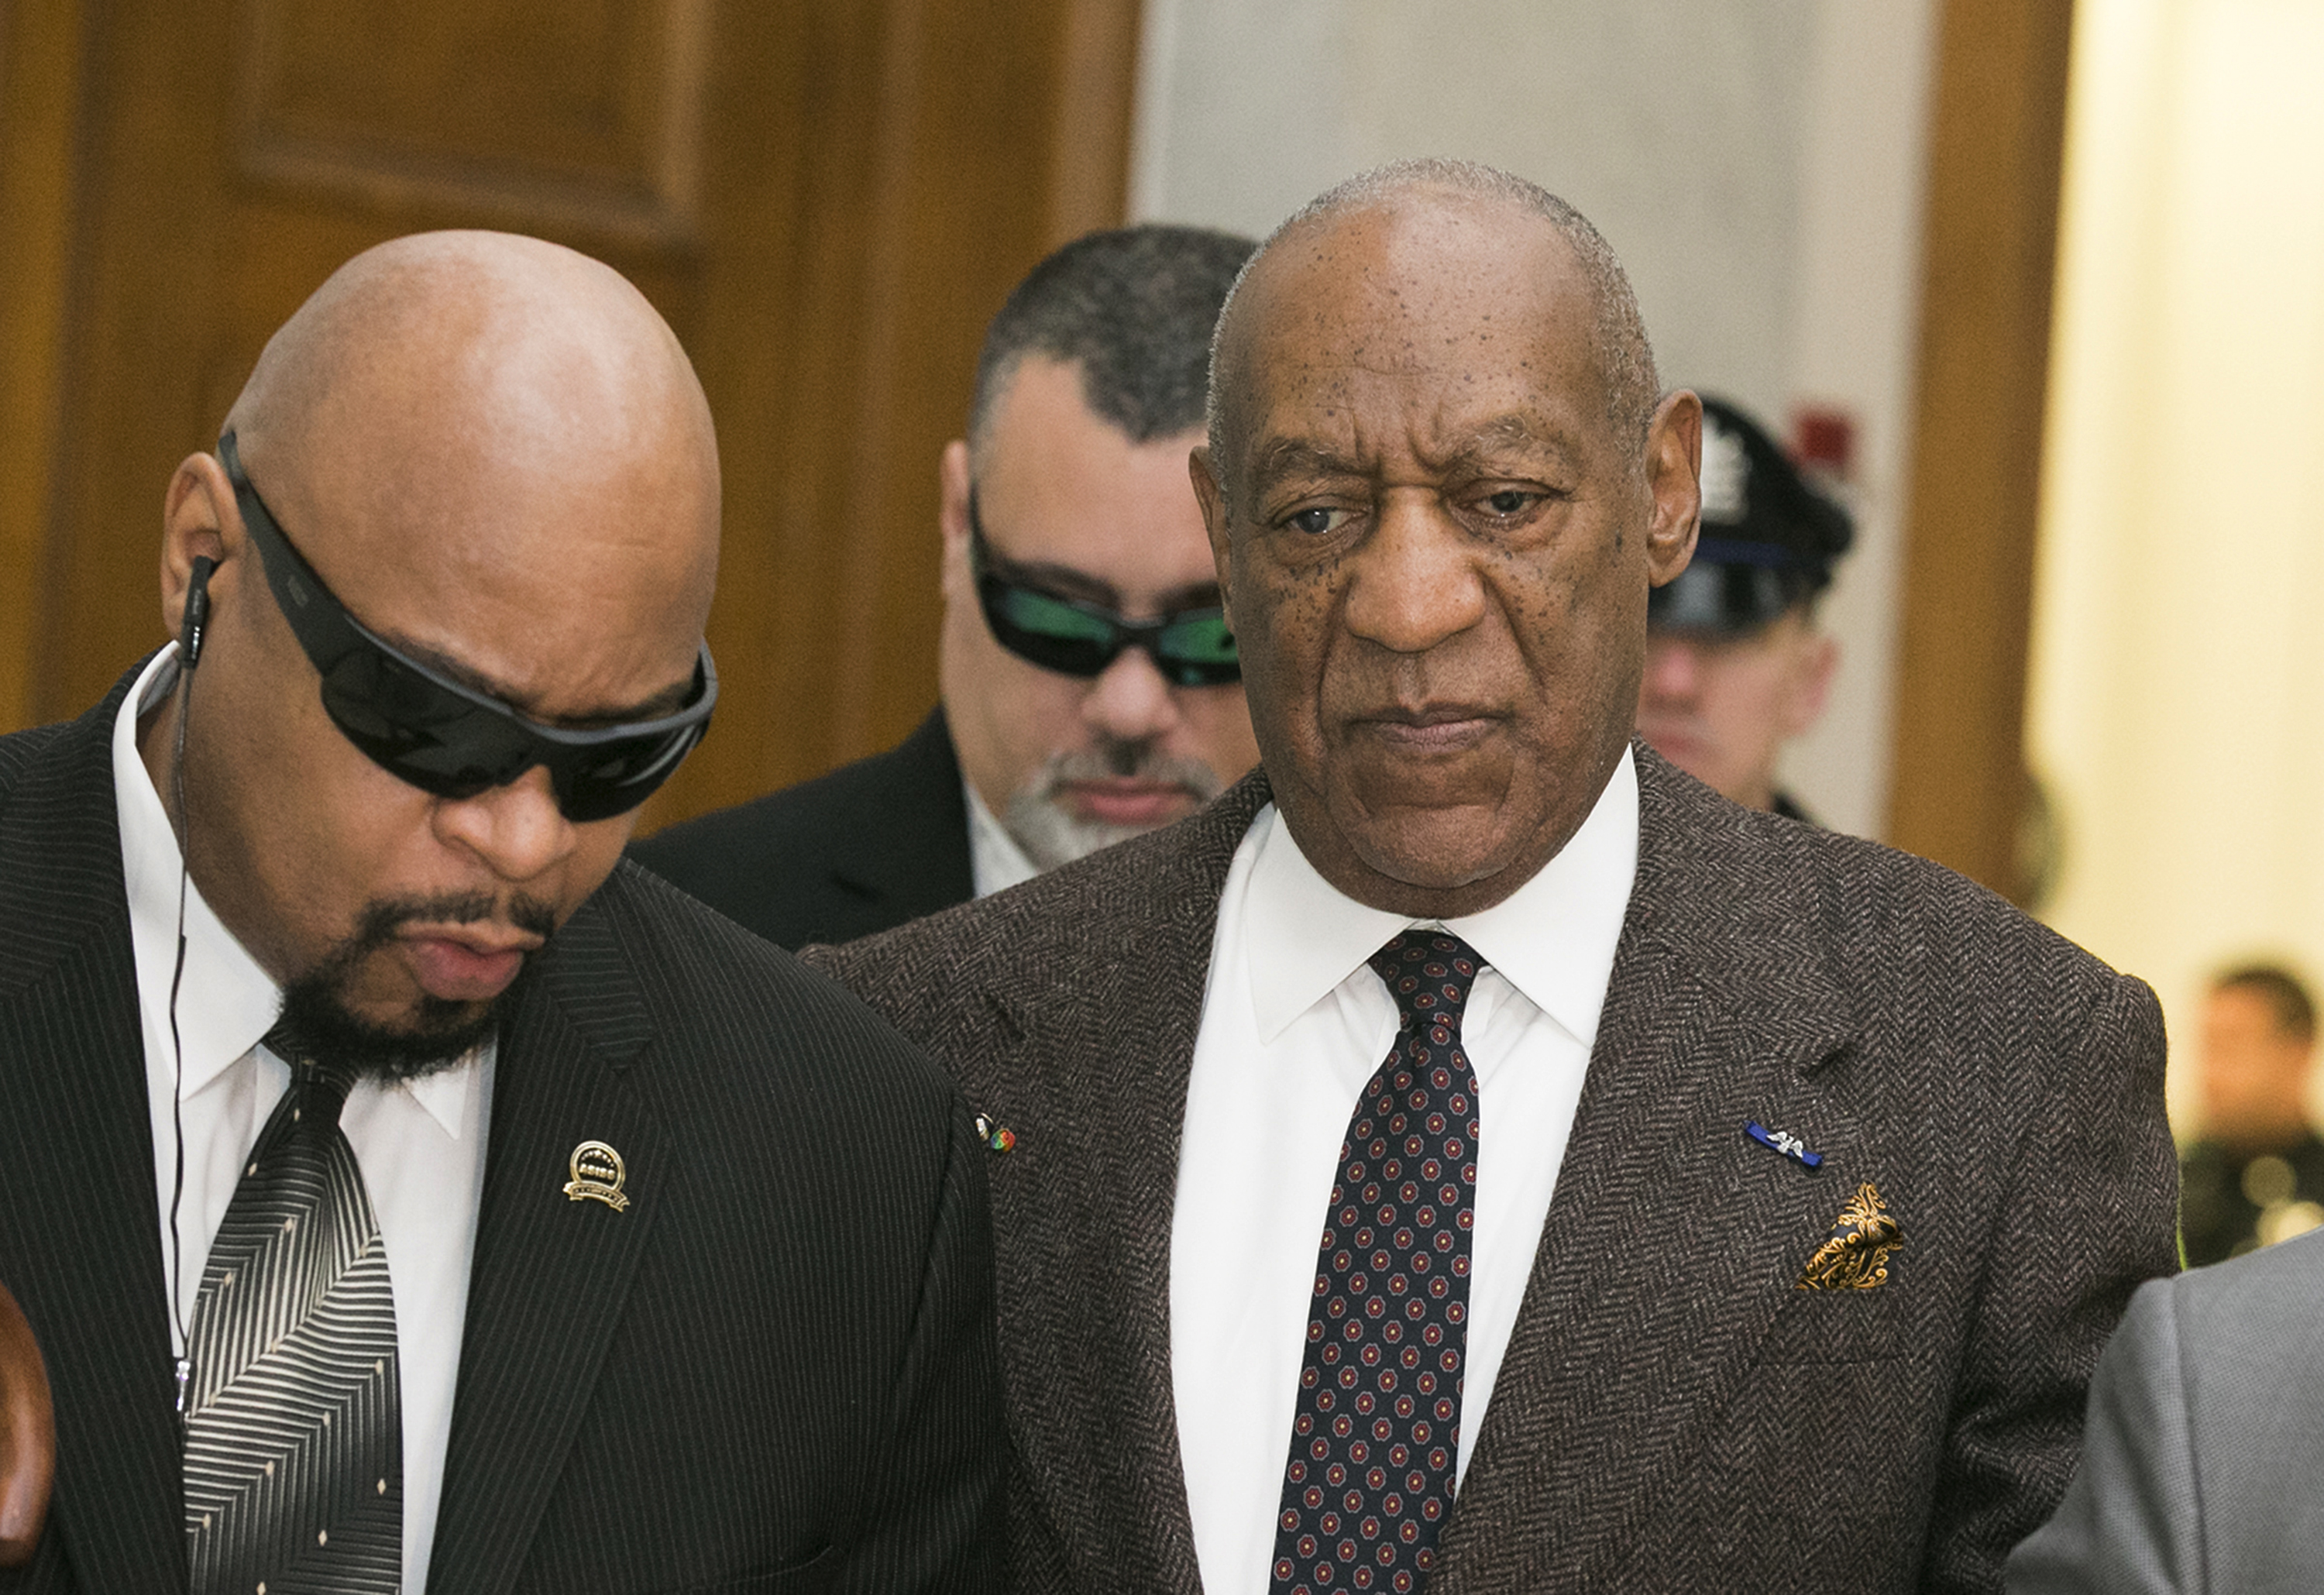 Bill Cosby arrives for the second day of hearings at the Montgomery County Courthouse in Norristown, Penn., on Feb. 3, 2016.